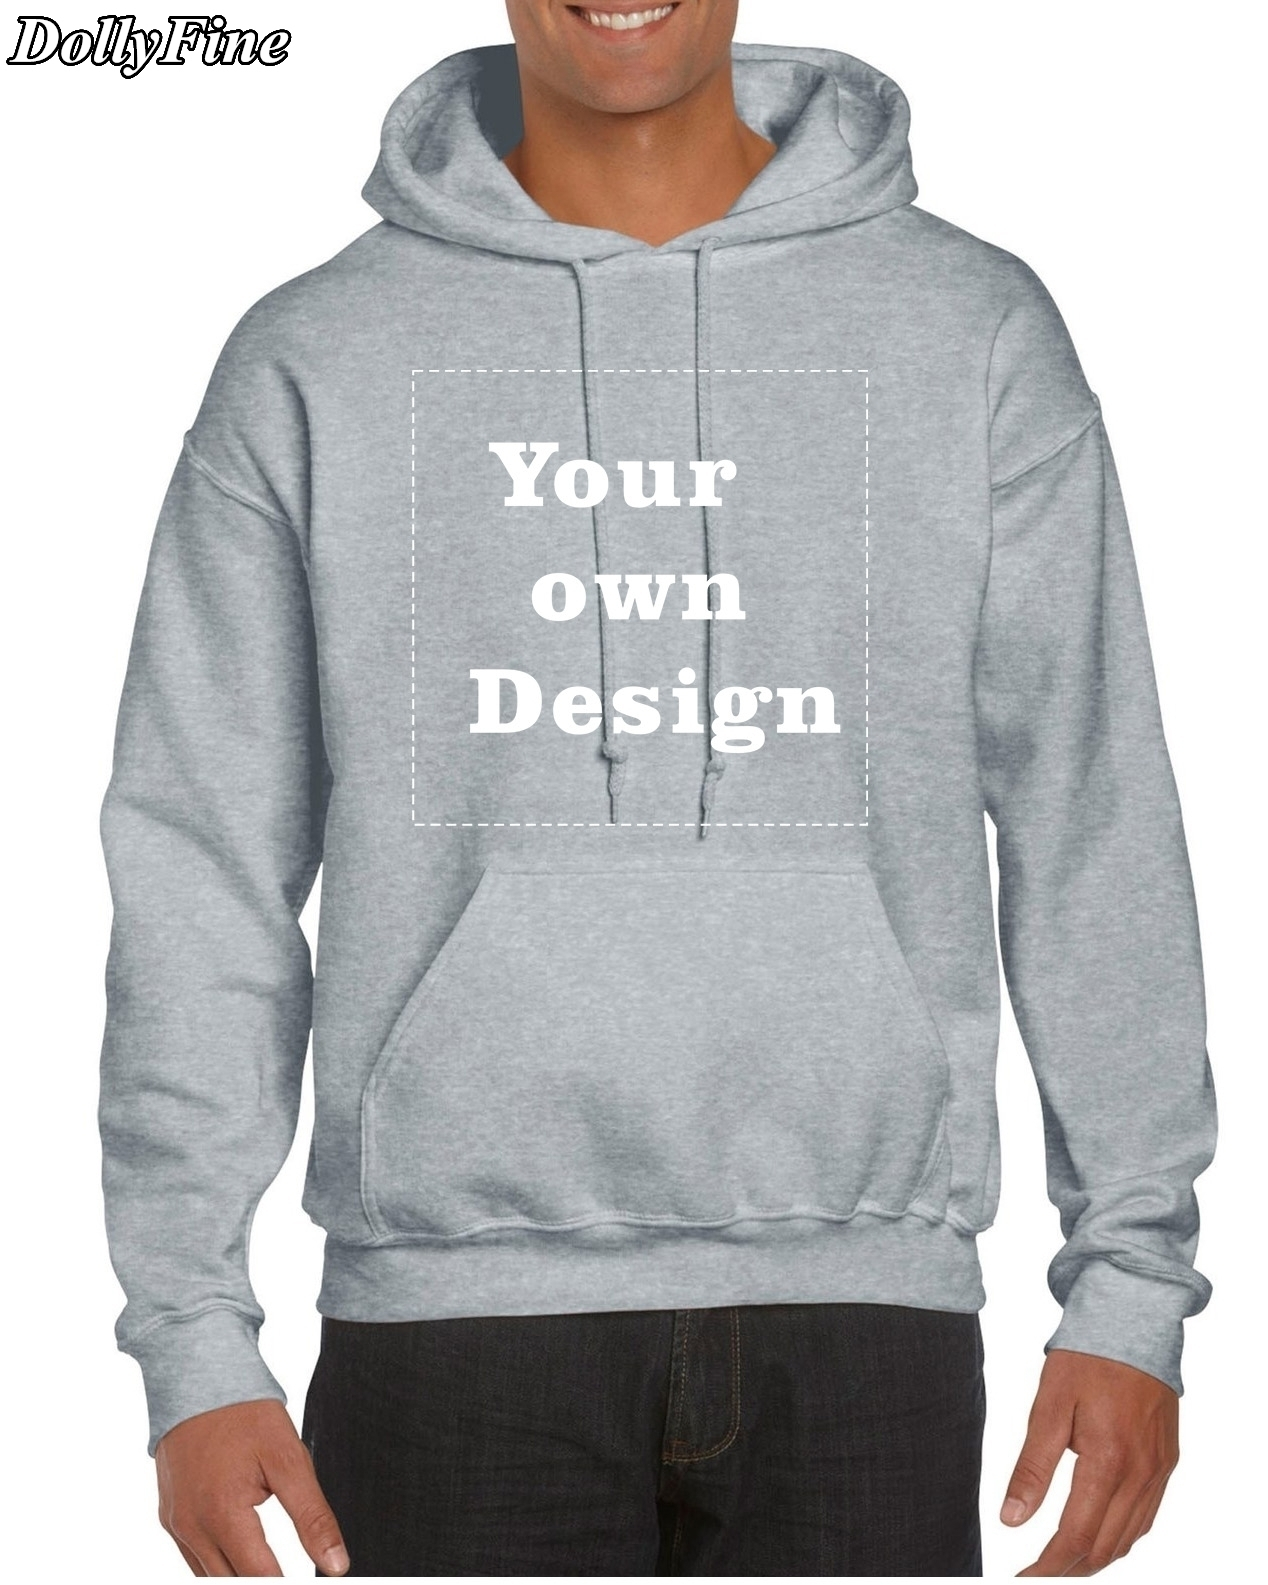 Customize your own hoodie online cheap